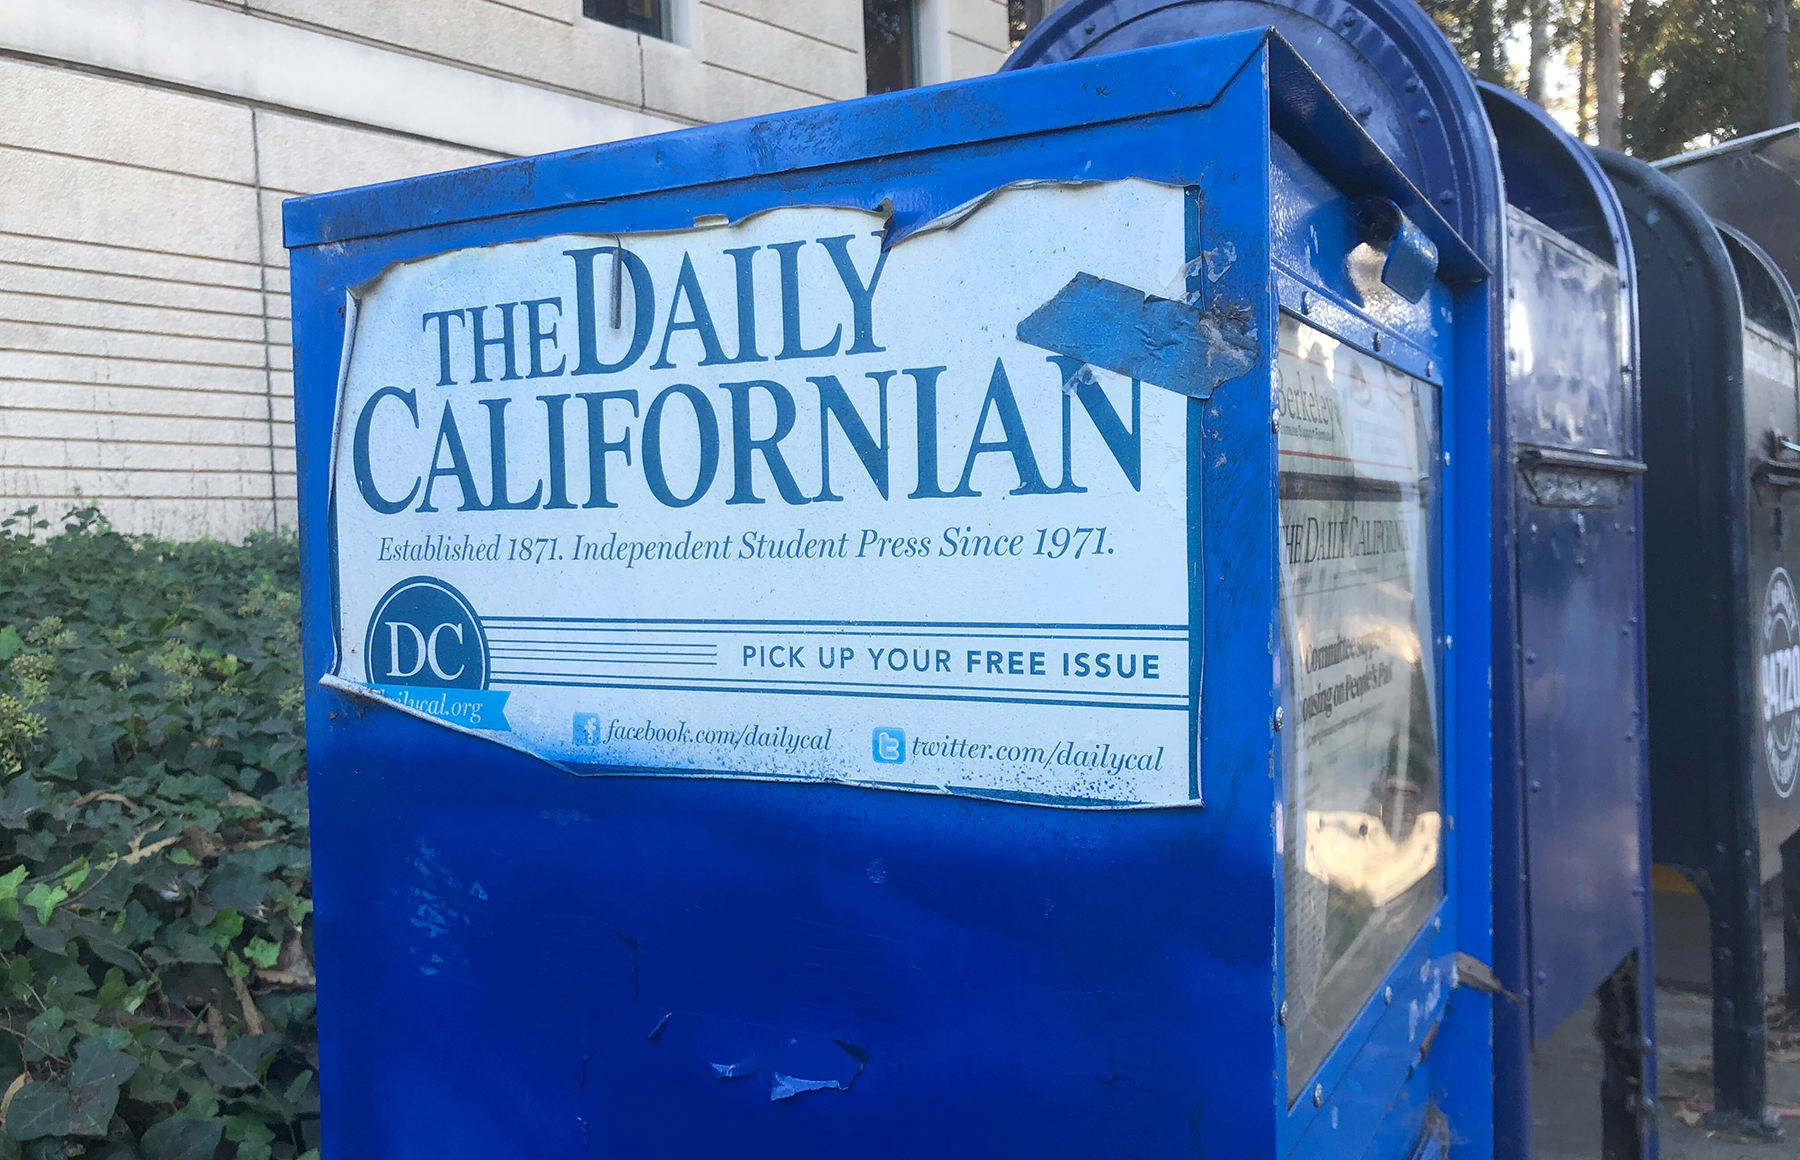 photo of a Daily Californian newspaper box